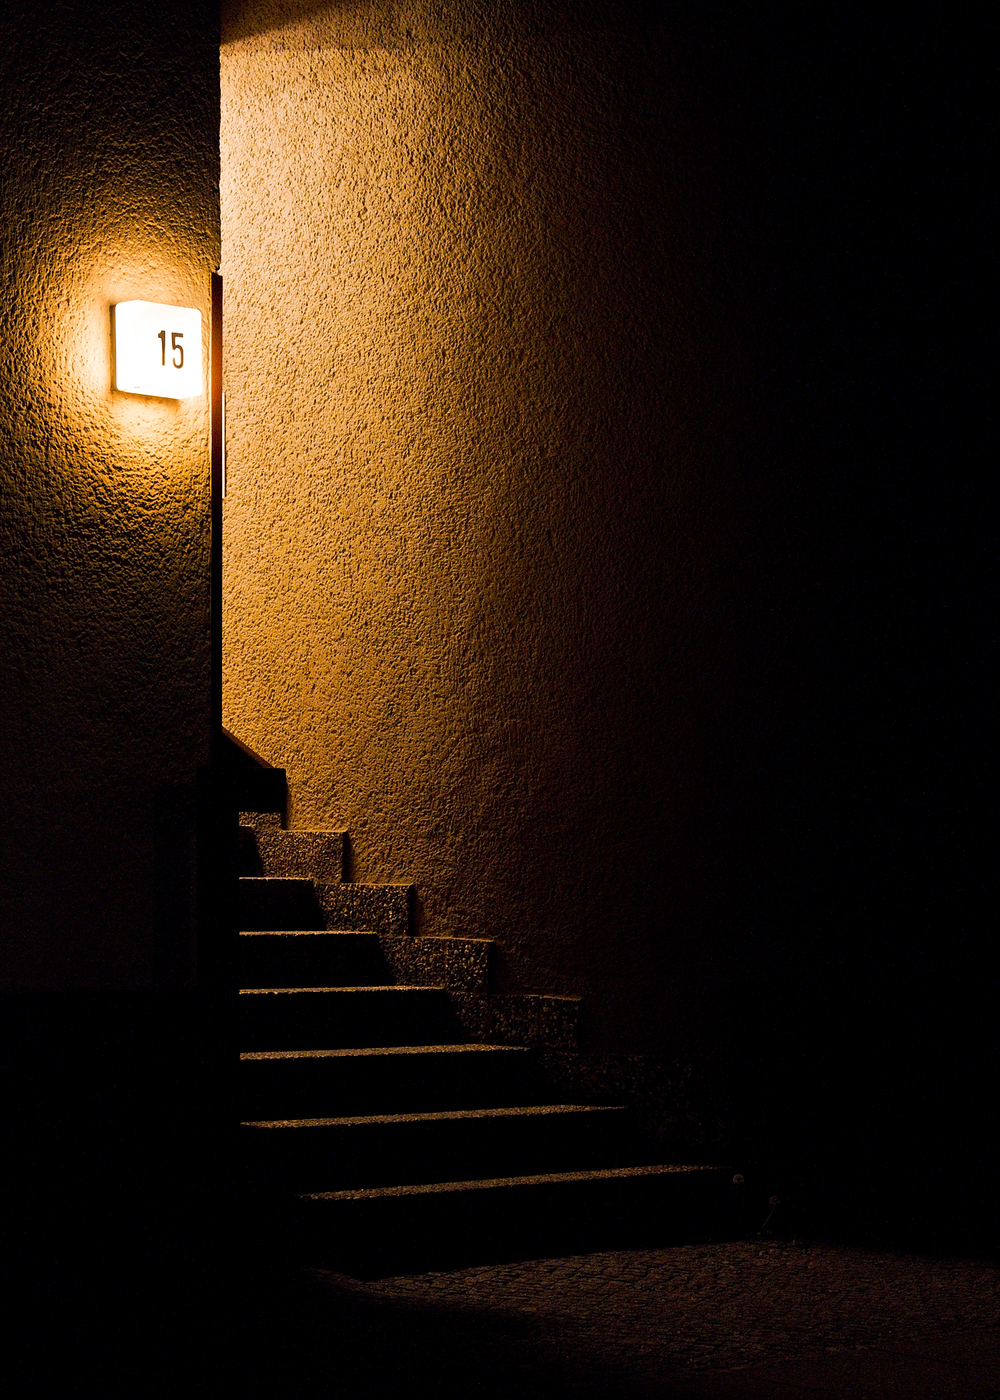 stairs-night-apartment-yellow-city-berlin-lonely-quiet